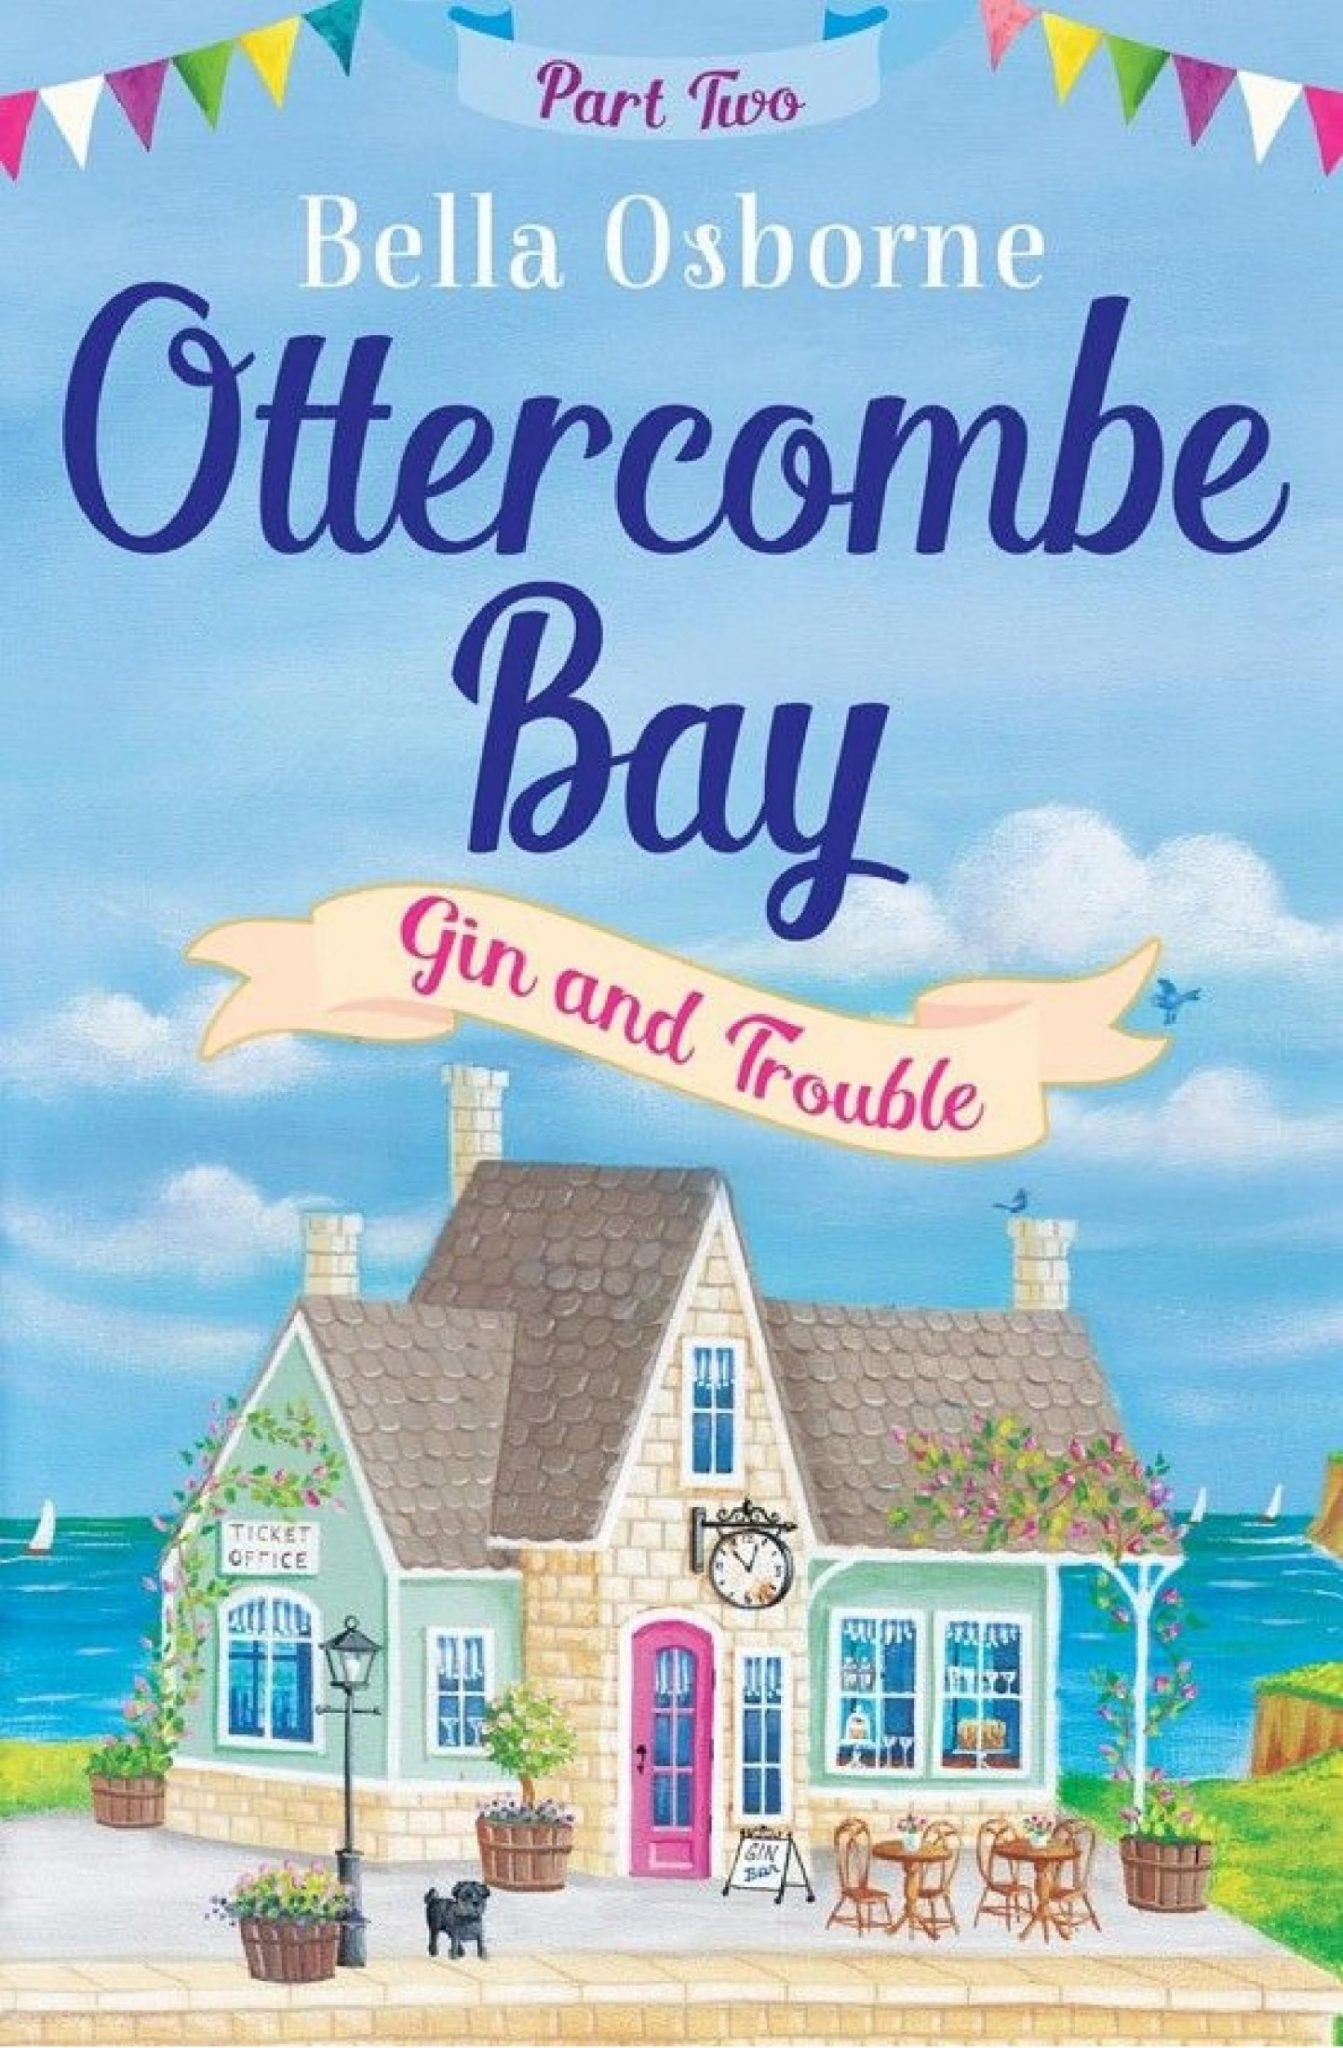 Gin and Trouble by Bella Osborne